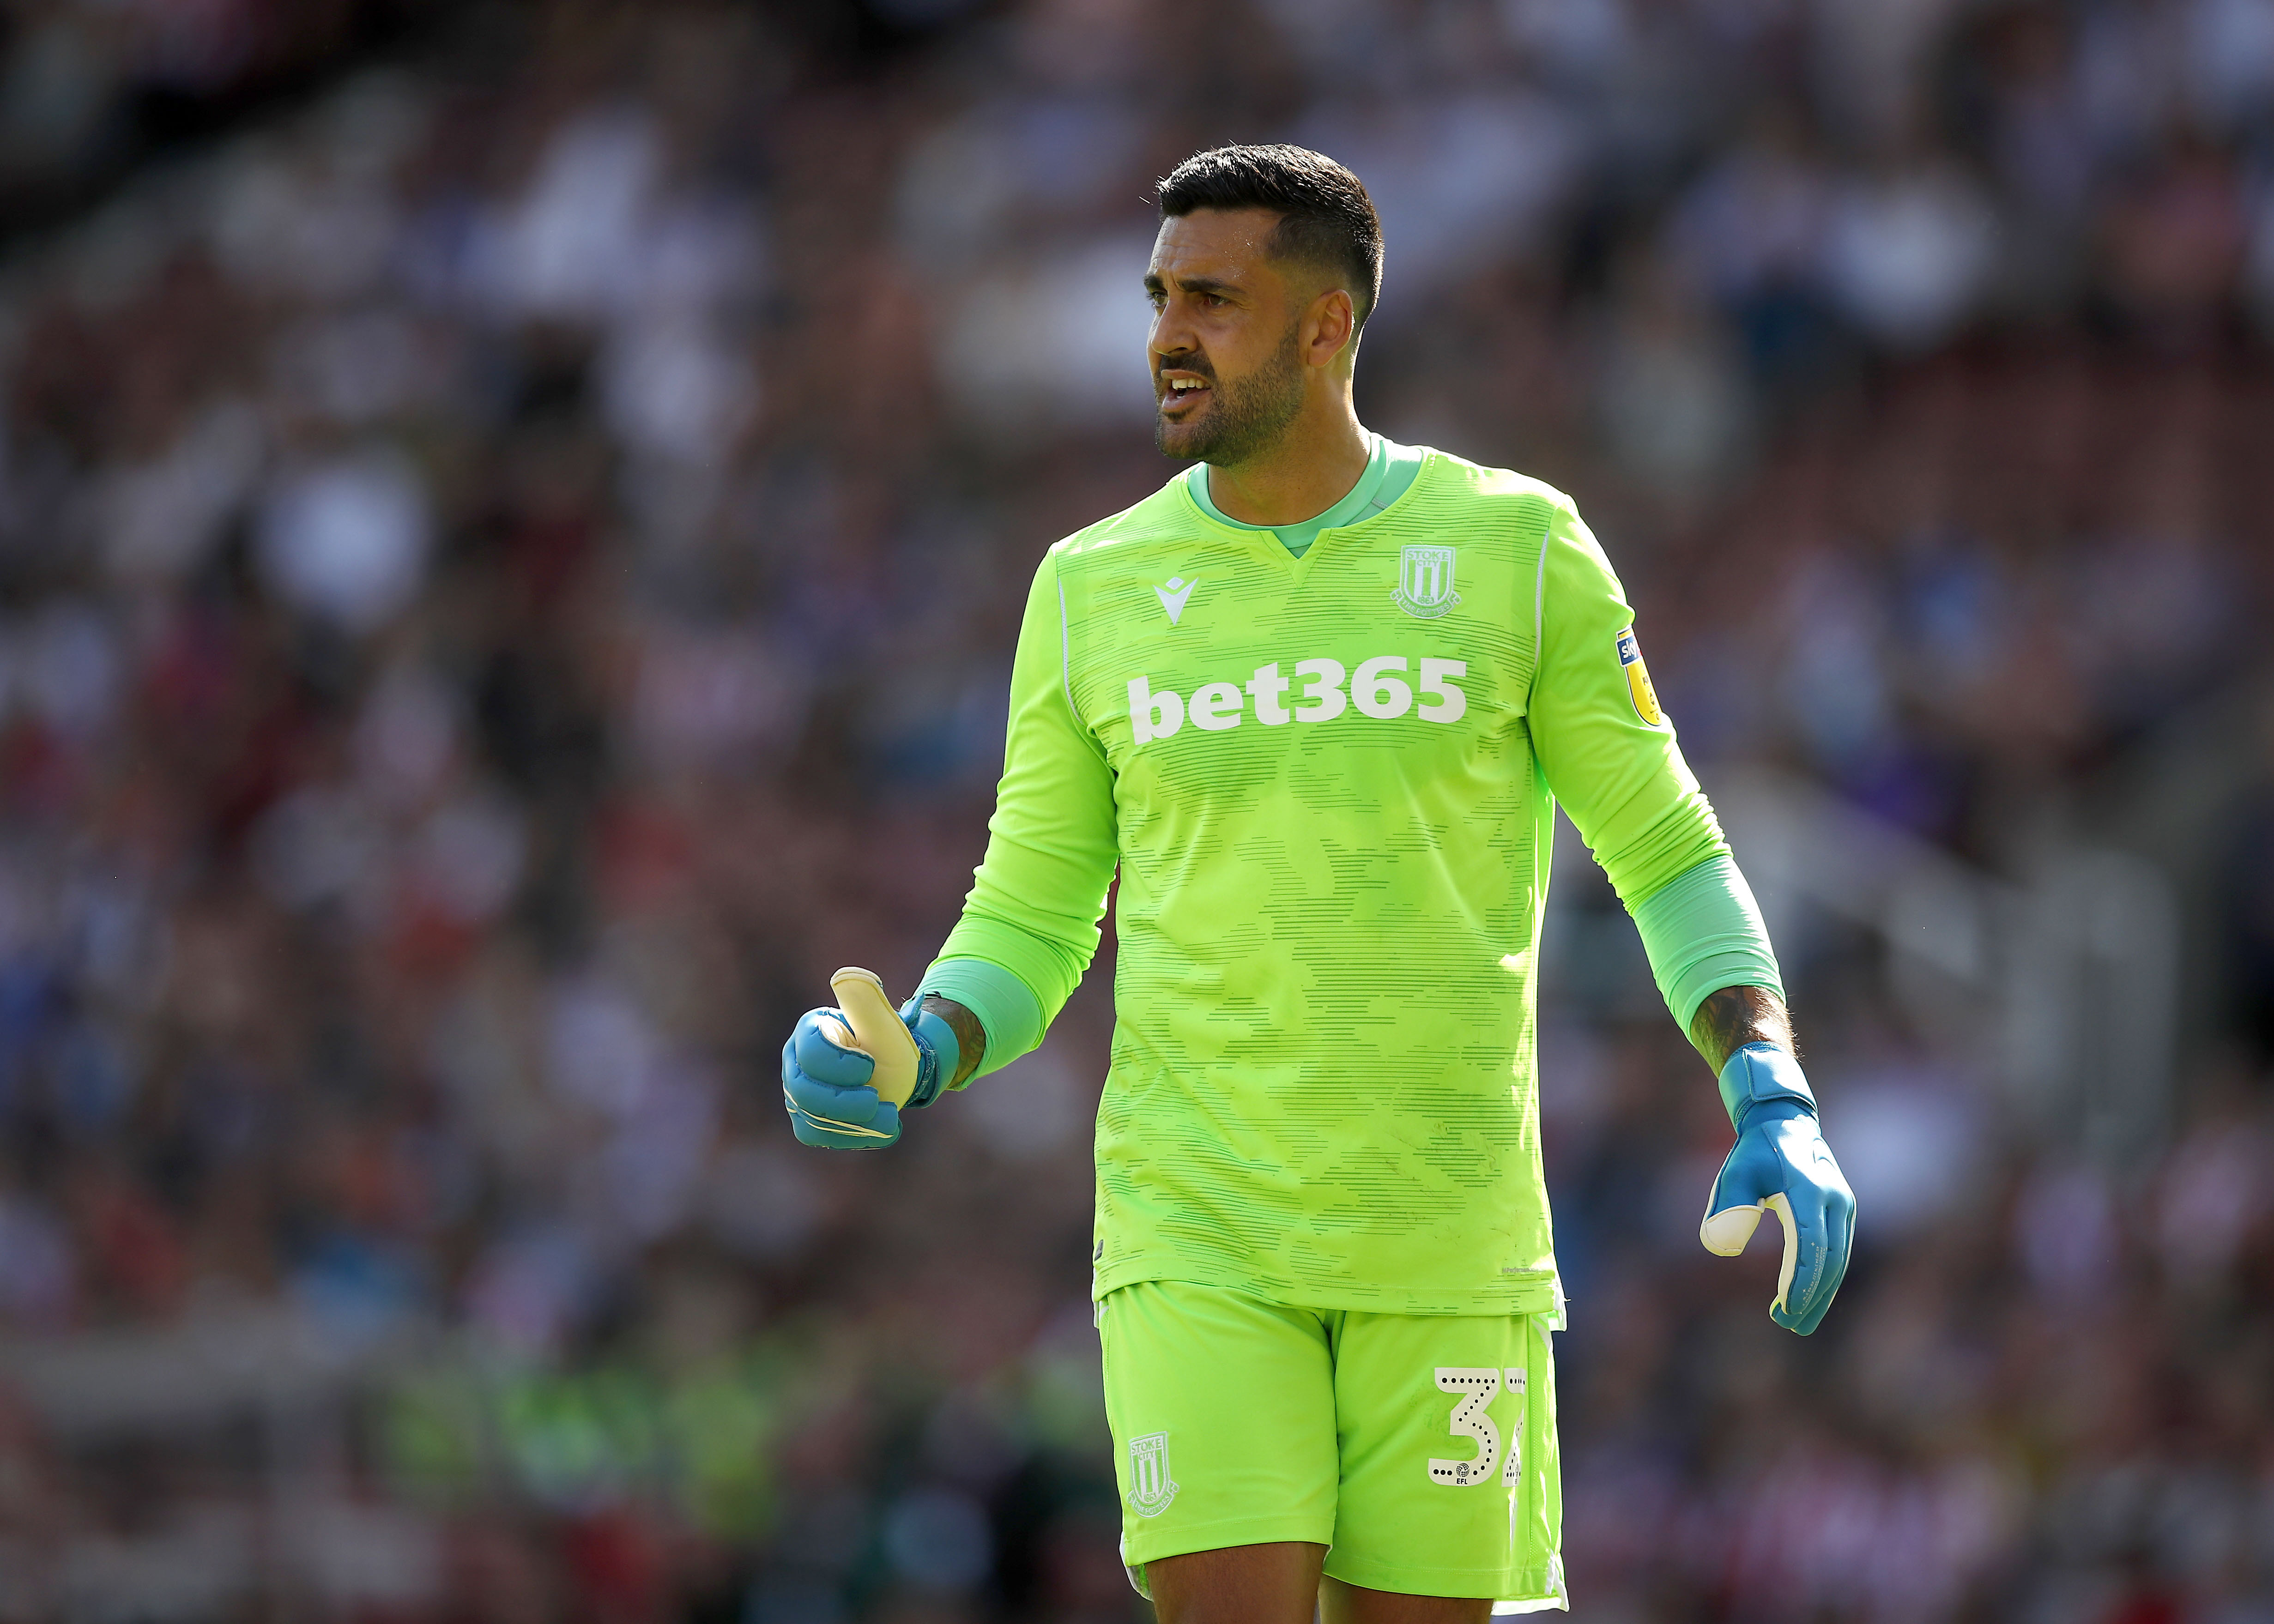 Adam Federici in action for Stoke City in the Championship